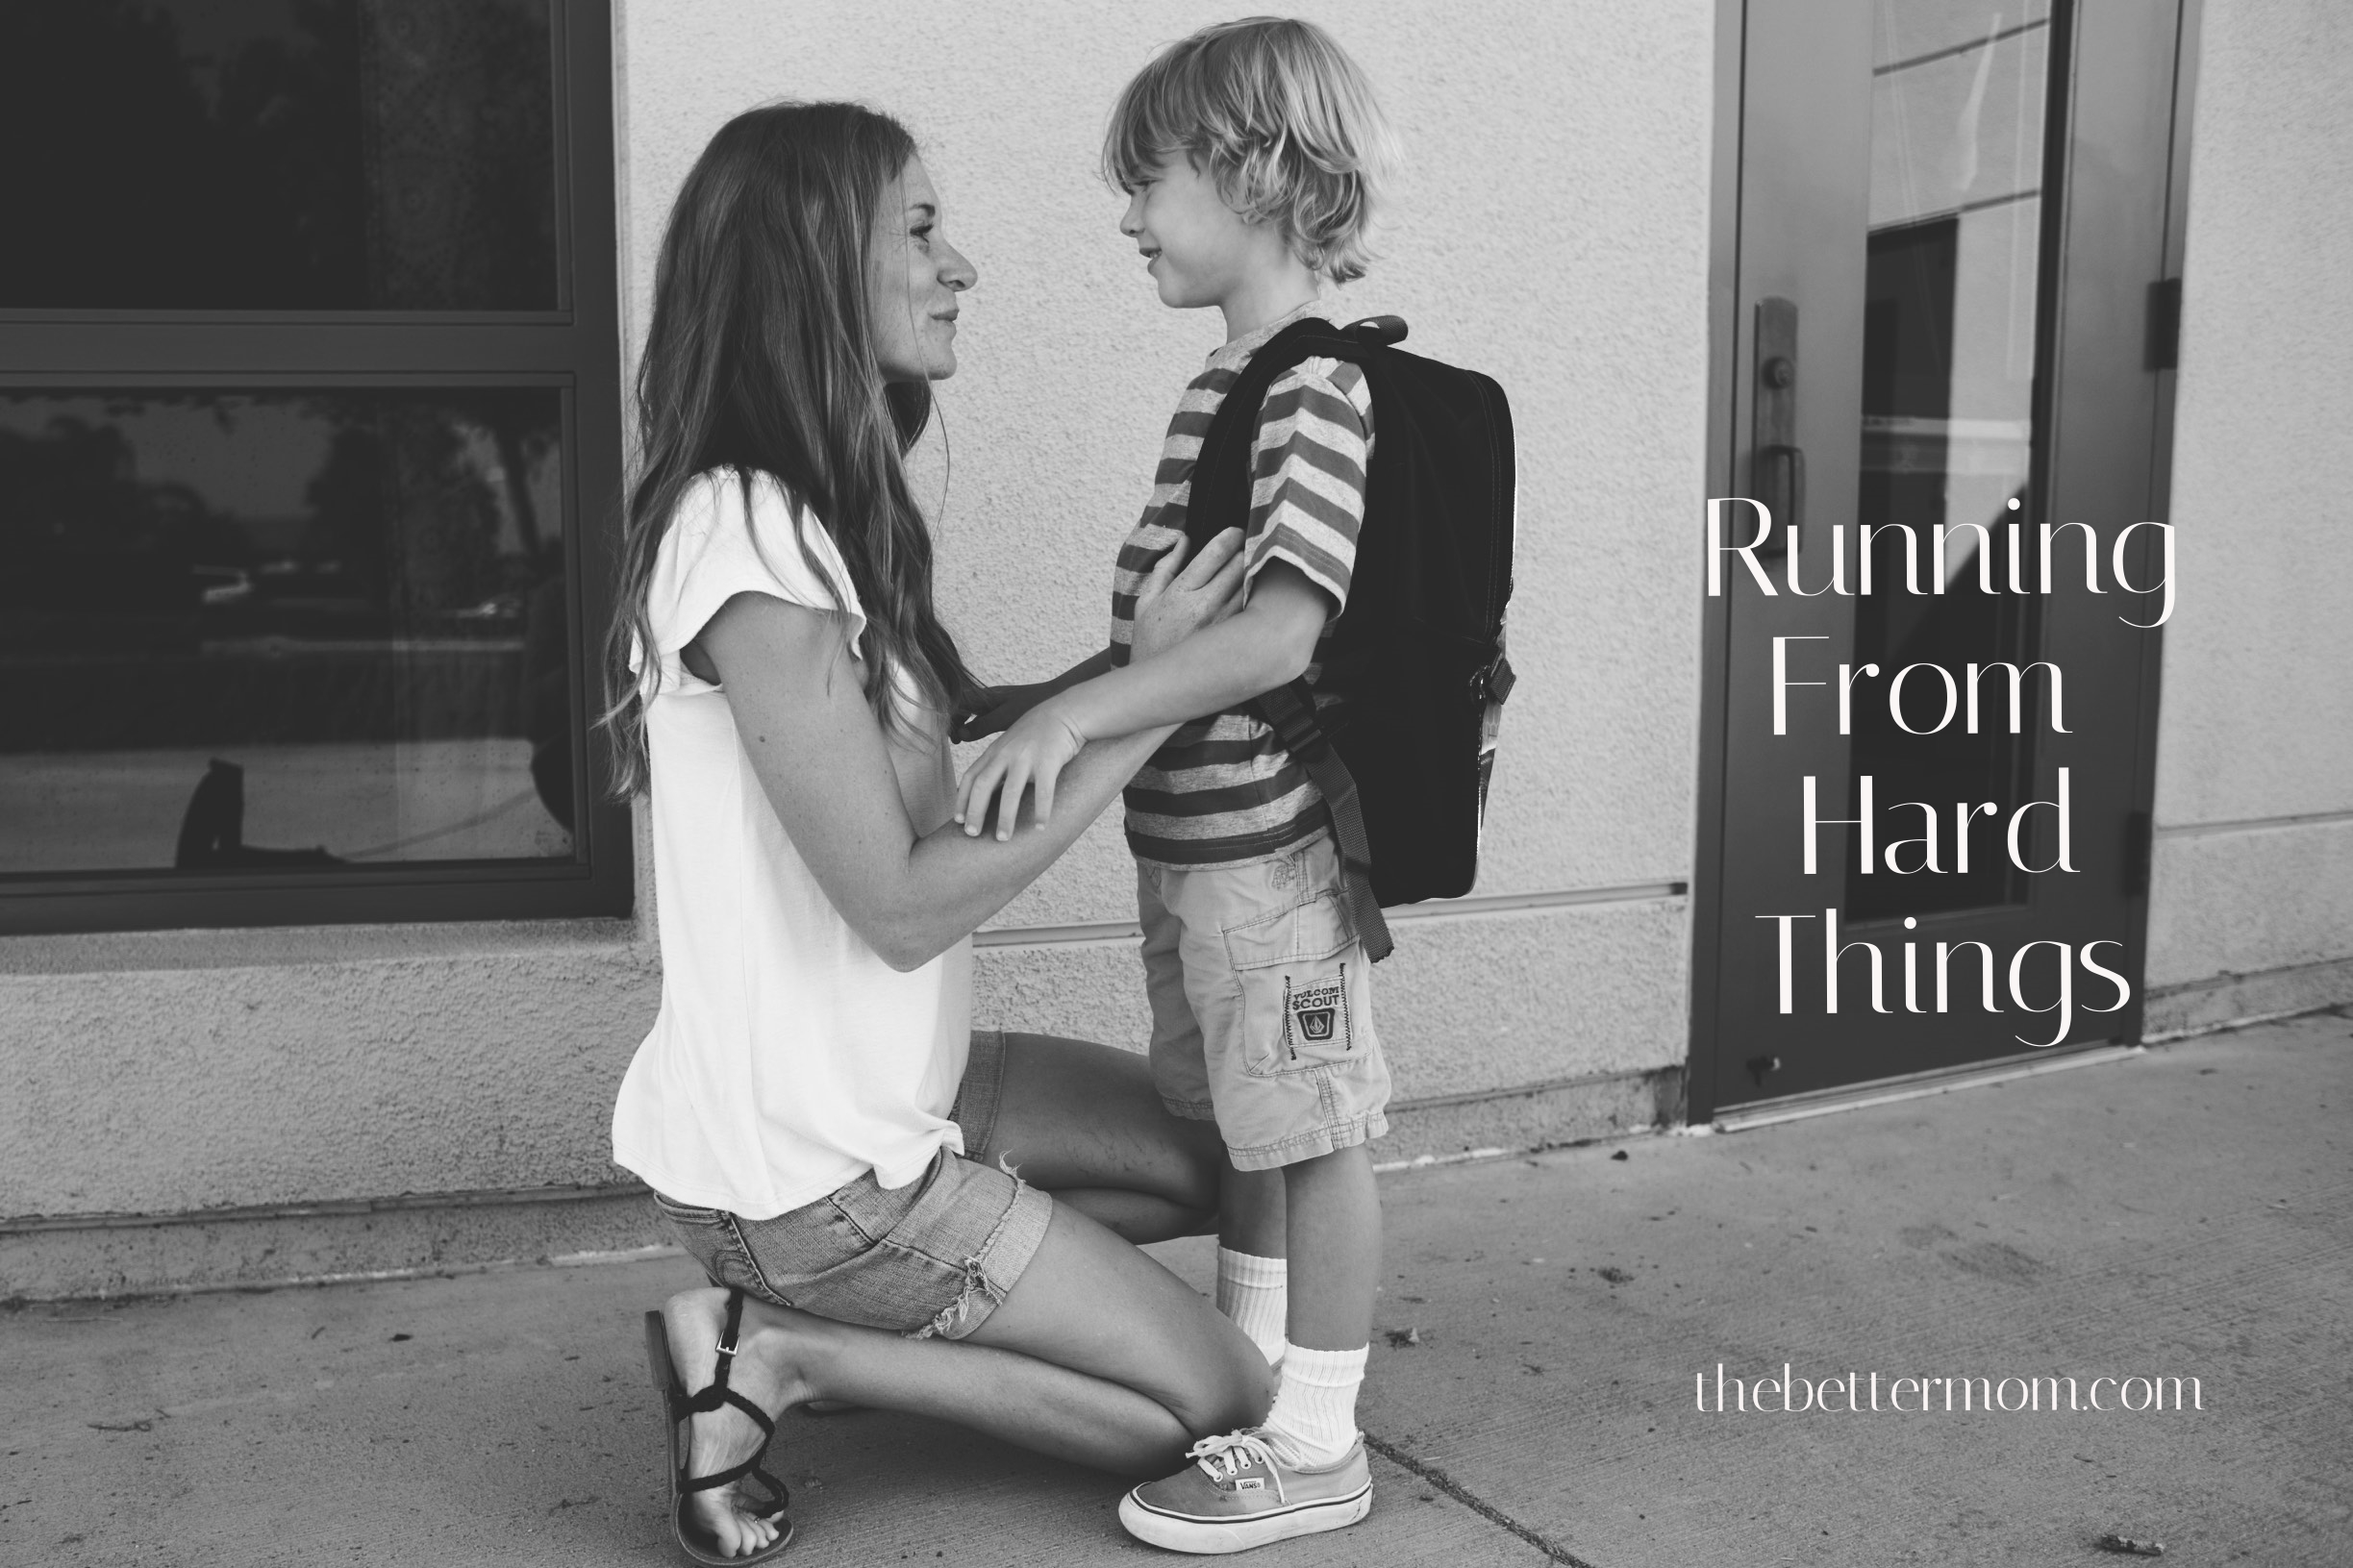 Do we runaway from things that scare us, or do we face them? When our children face hard things, may we be moms that respond by urging them towards christ as we care for them. Do your children know the great Comforter?